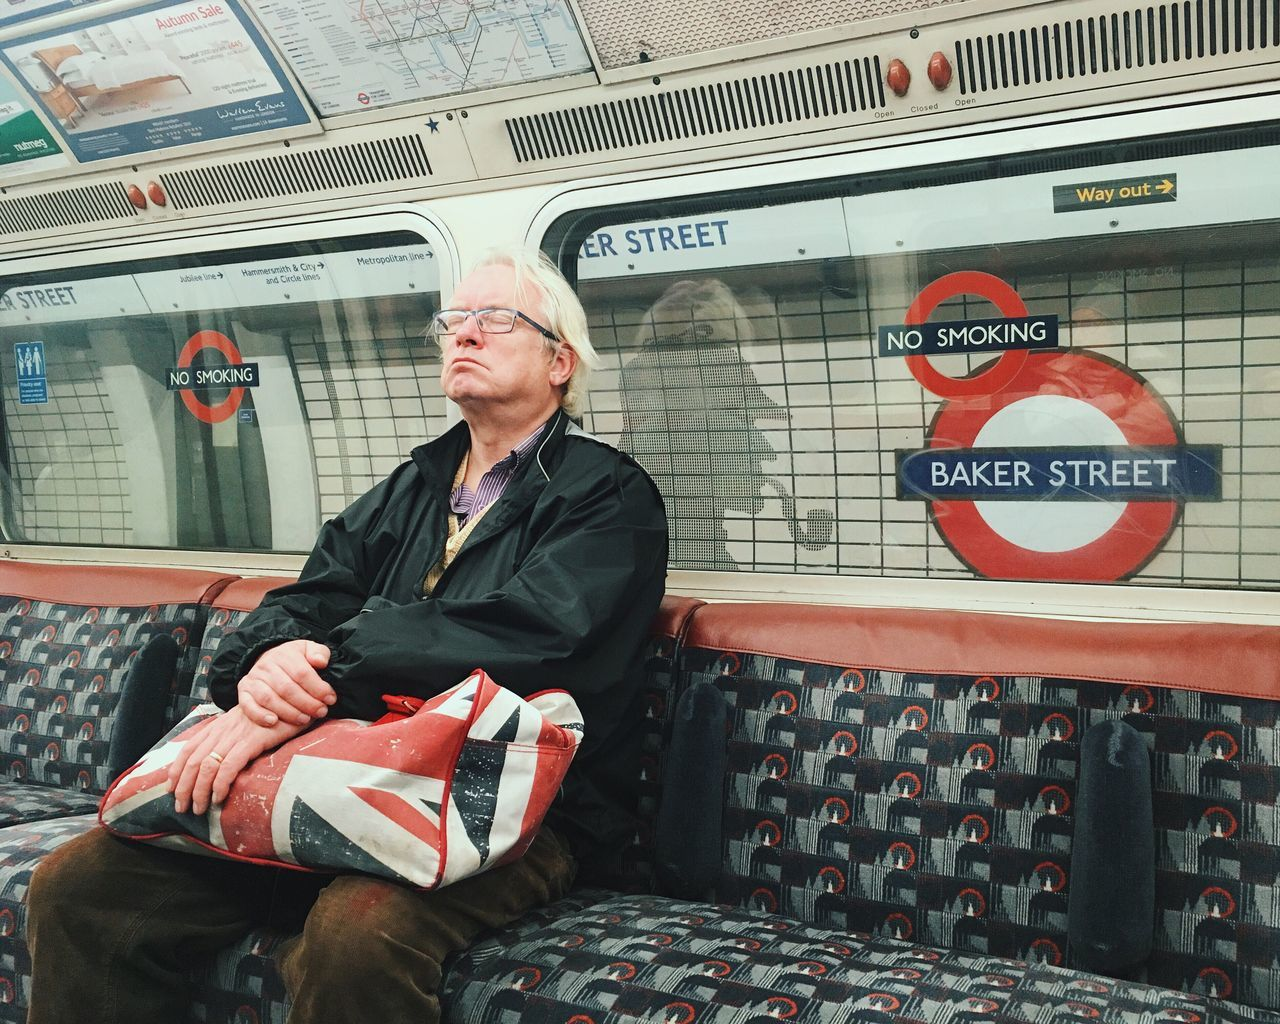 Yeah I'm not that John Watson. One Man Only One Person Public Transportation Indoors  Subway Train People Day NEM Street Shootermag Youmobile Mobile Photography Mobilephotography Travel What Who Where The Street Photographer - 2017 EyeEm Awards